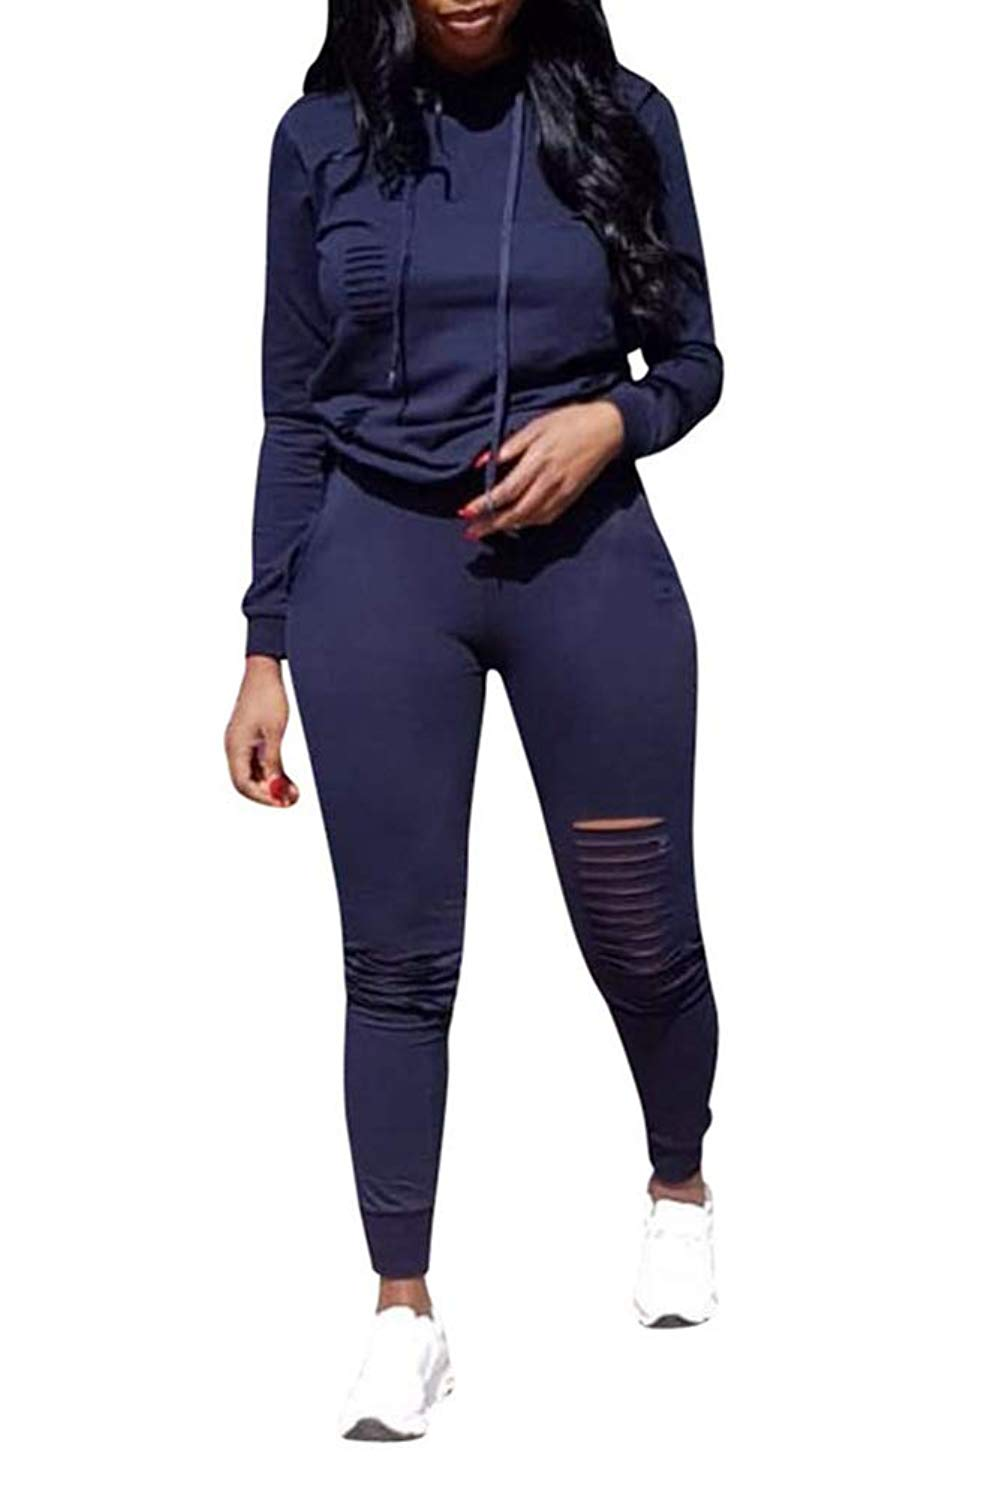 ba79629fcdee Get Quotations · Ophestin Women Casual Long Sleeve Hoodies Ripped Top  Skinny Long Pants Set Tracksuits 2 Piece Jumpsuits